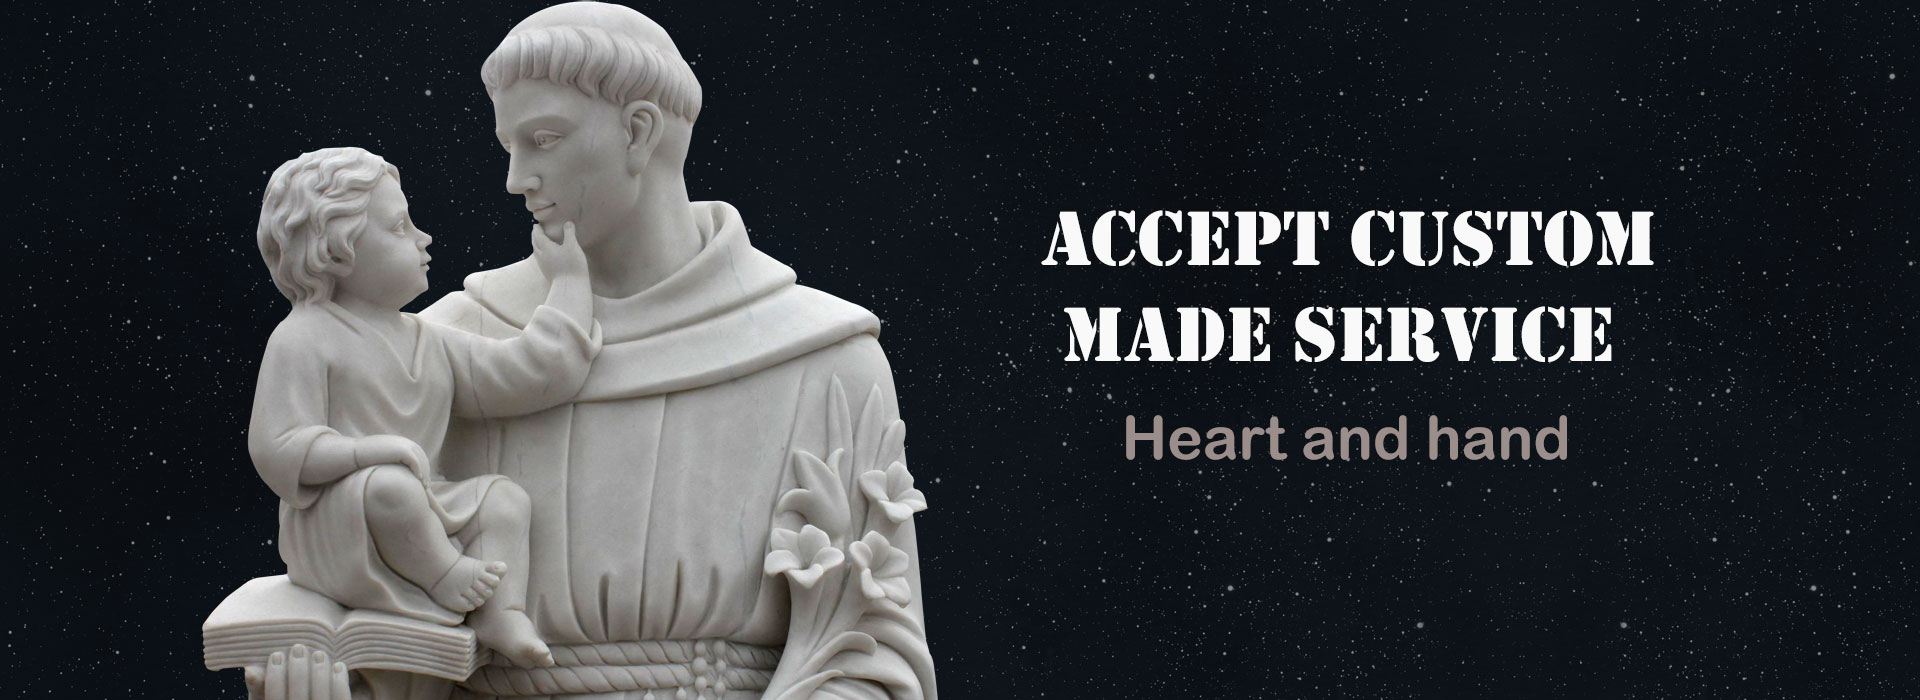 Relief character stone statue saint Anthony statue price for wholesales Australia